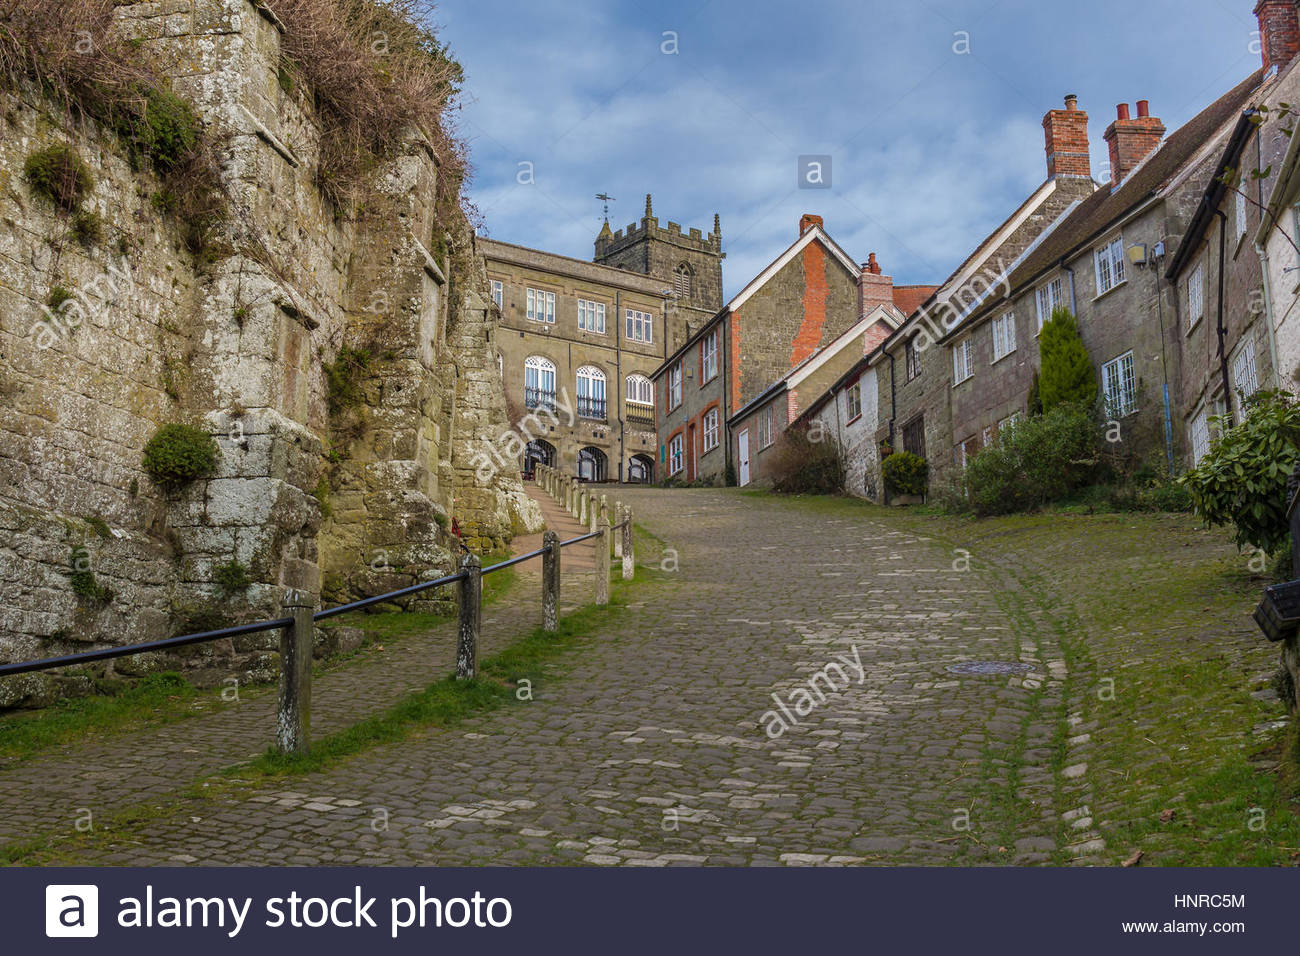 Gold Hill in Shaftesbury. The site of the famous Hovis advert - Stock Image